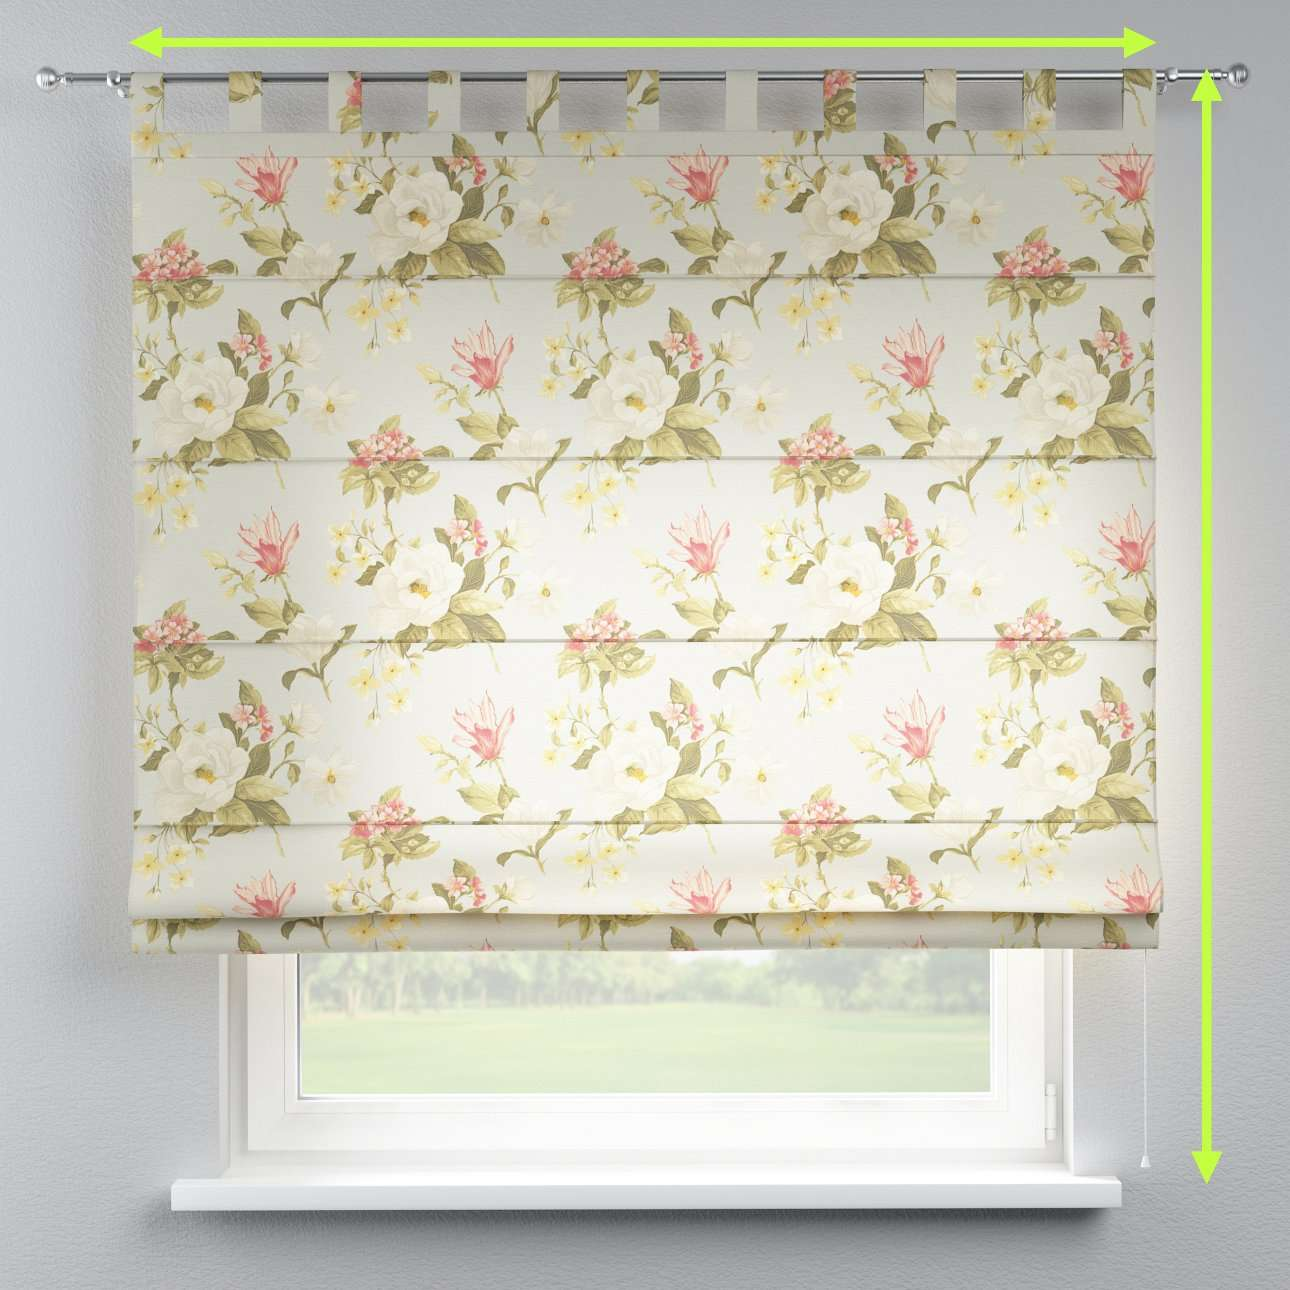 Verona tab top roman blind in collection Londres, fabric: 123-65